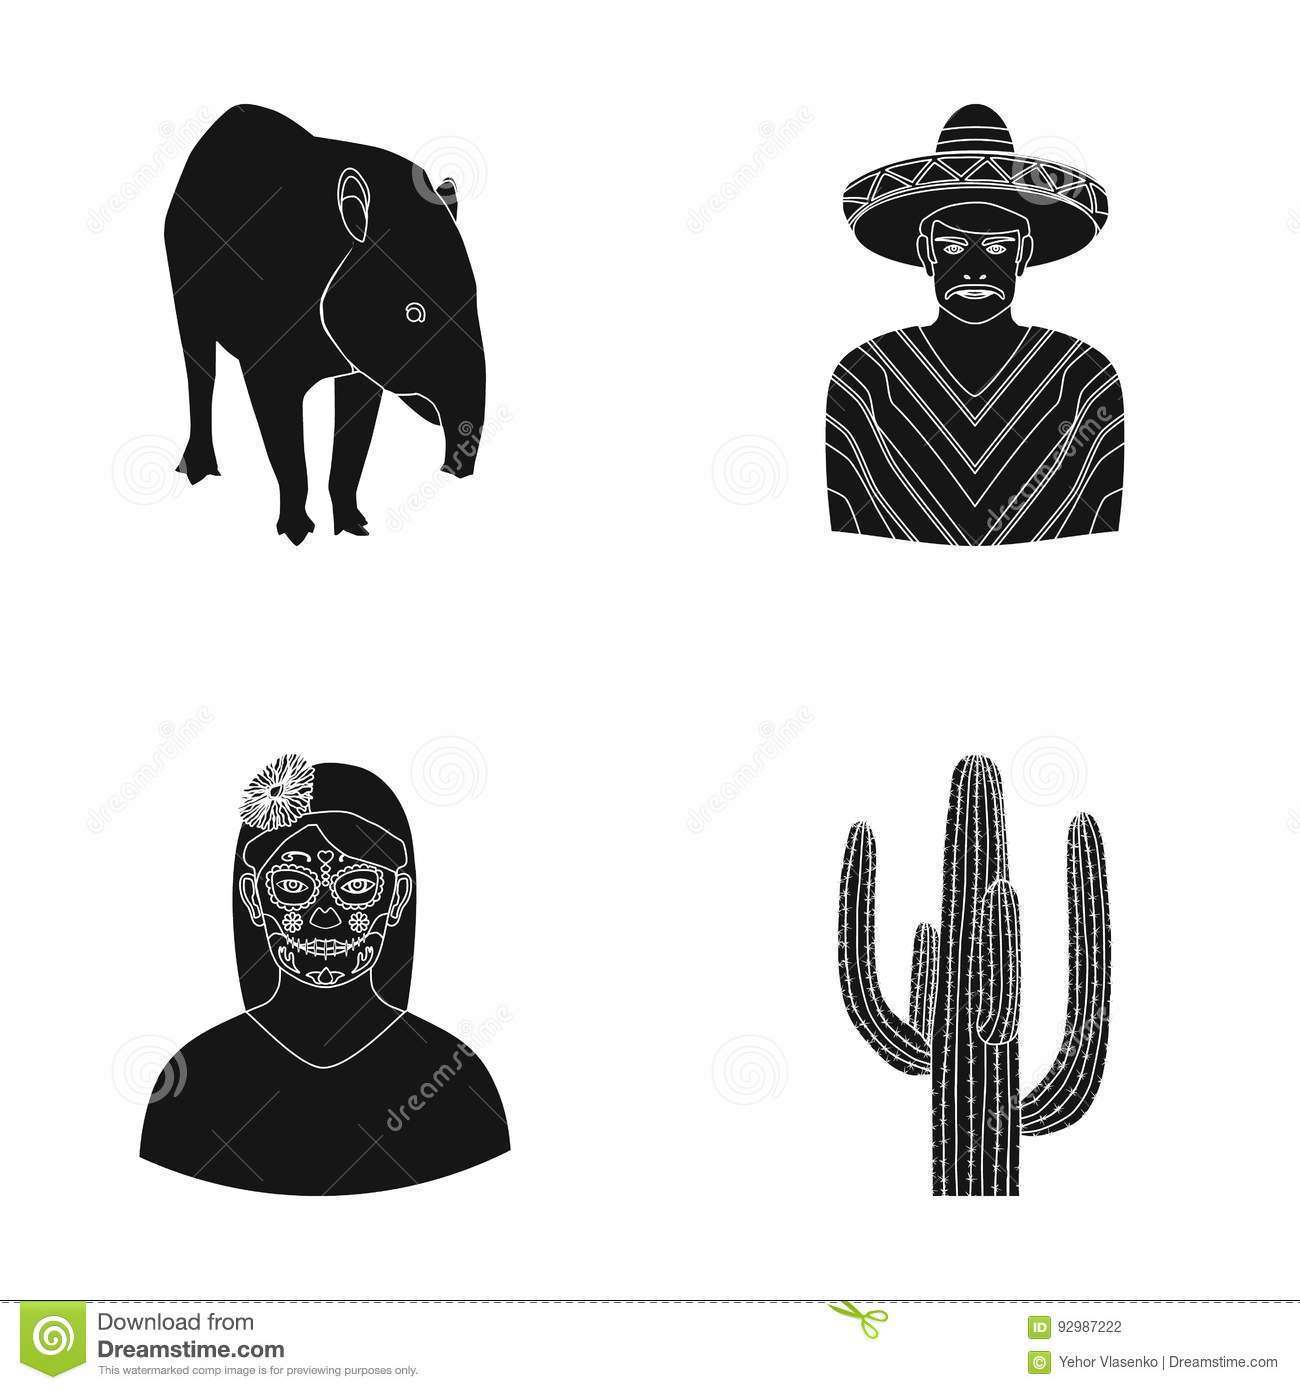 tapir mexican animal a mexican in national clothes in a poncho a